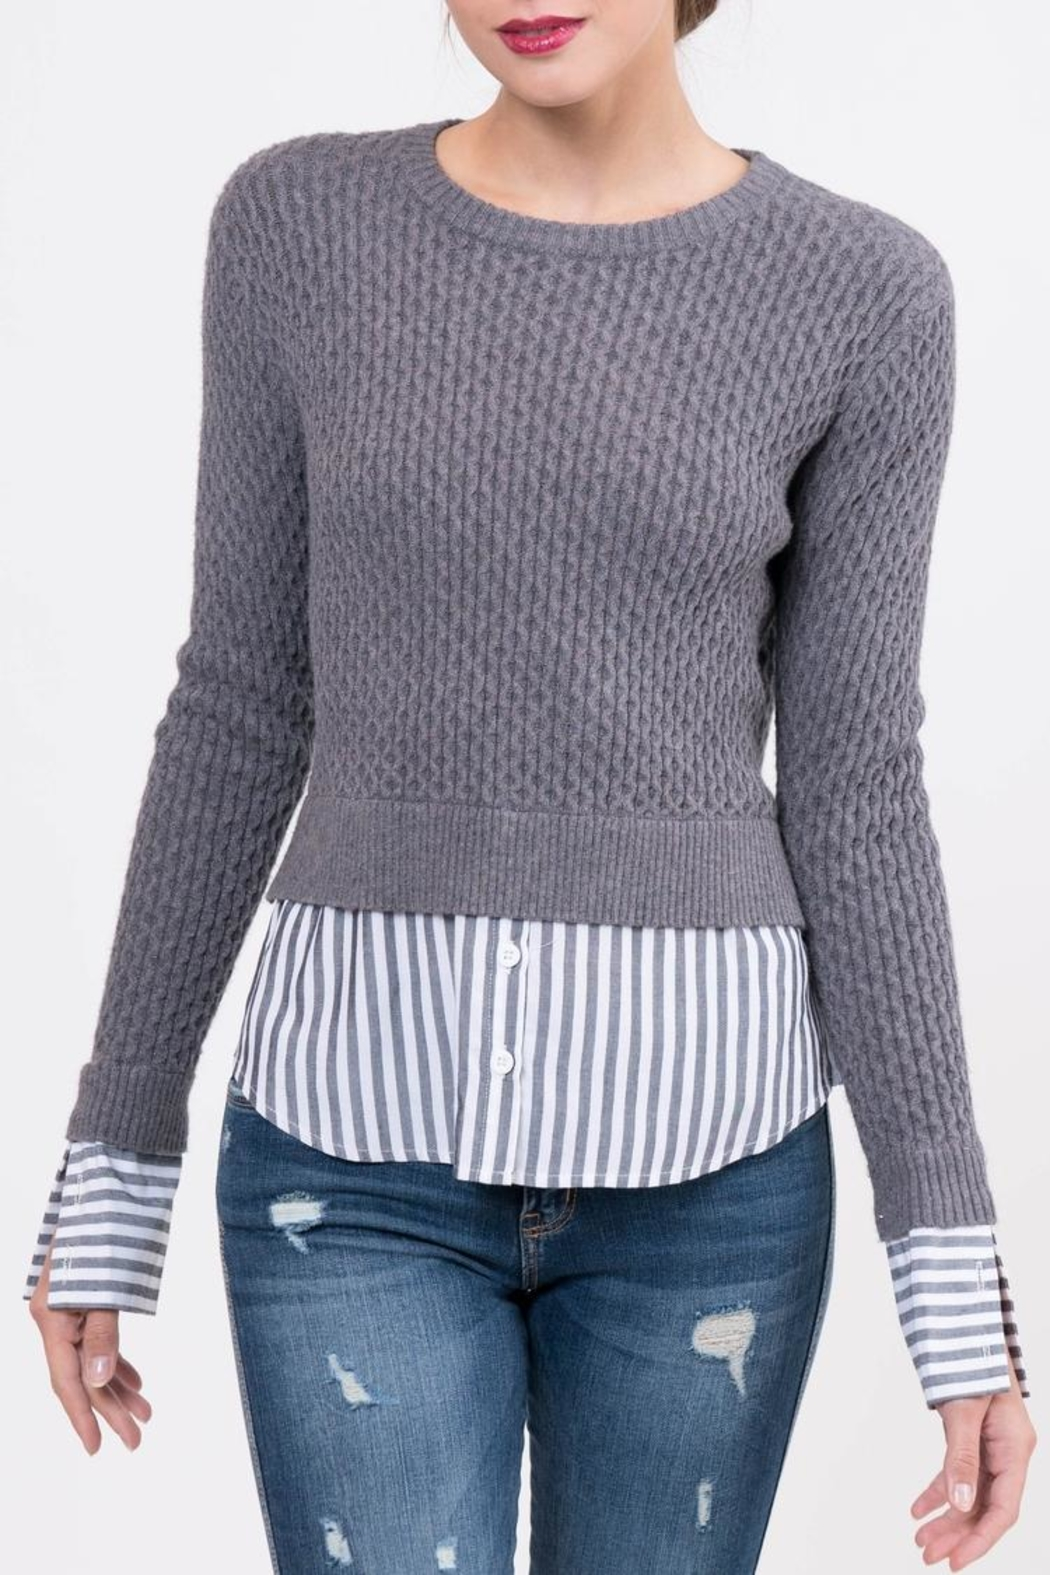 Lucy Paris Knitted Layered Sweater - Front Full Image